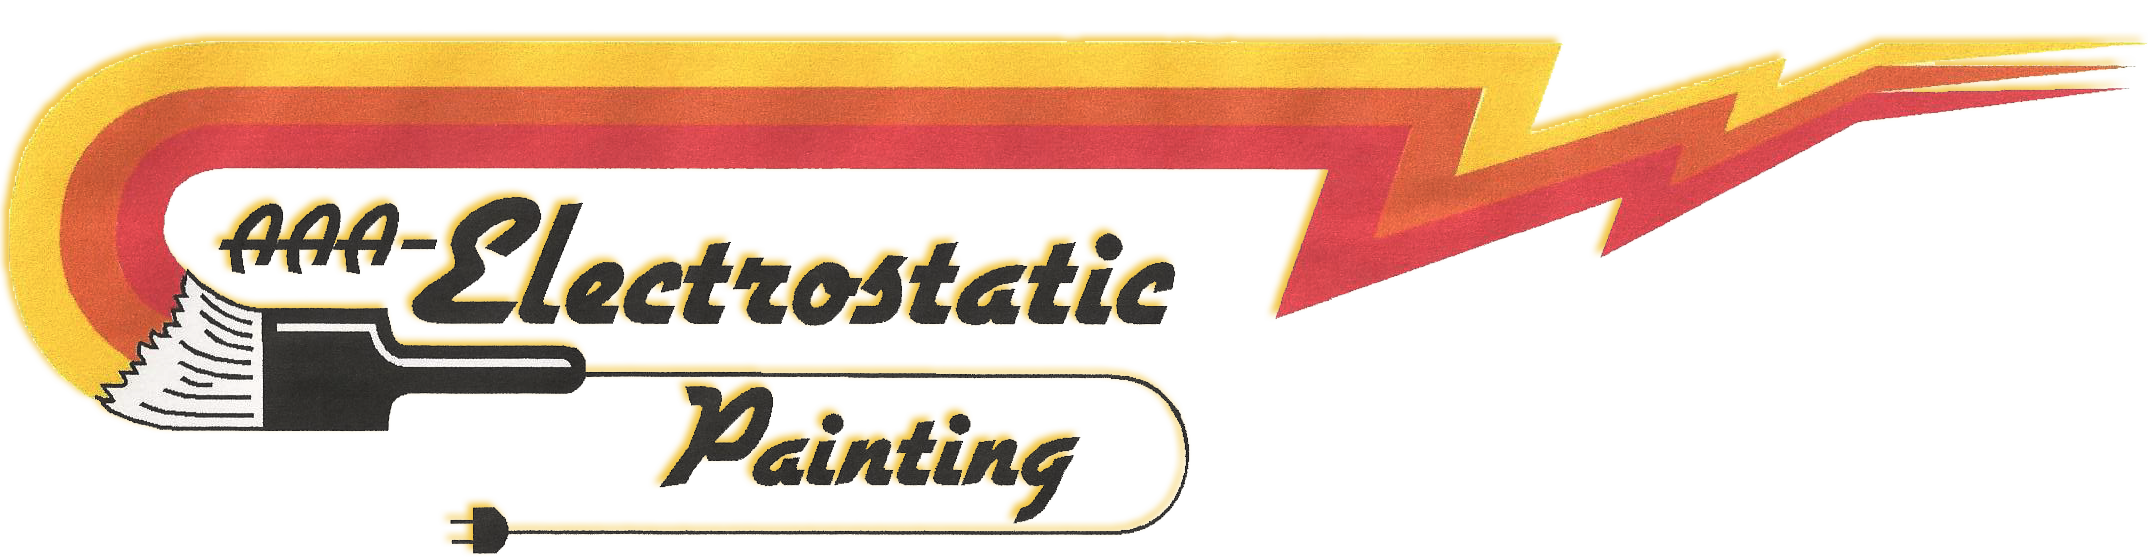 AAA Electrostatic Painting logo